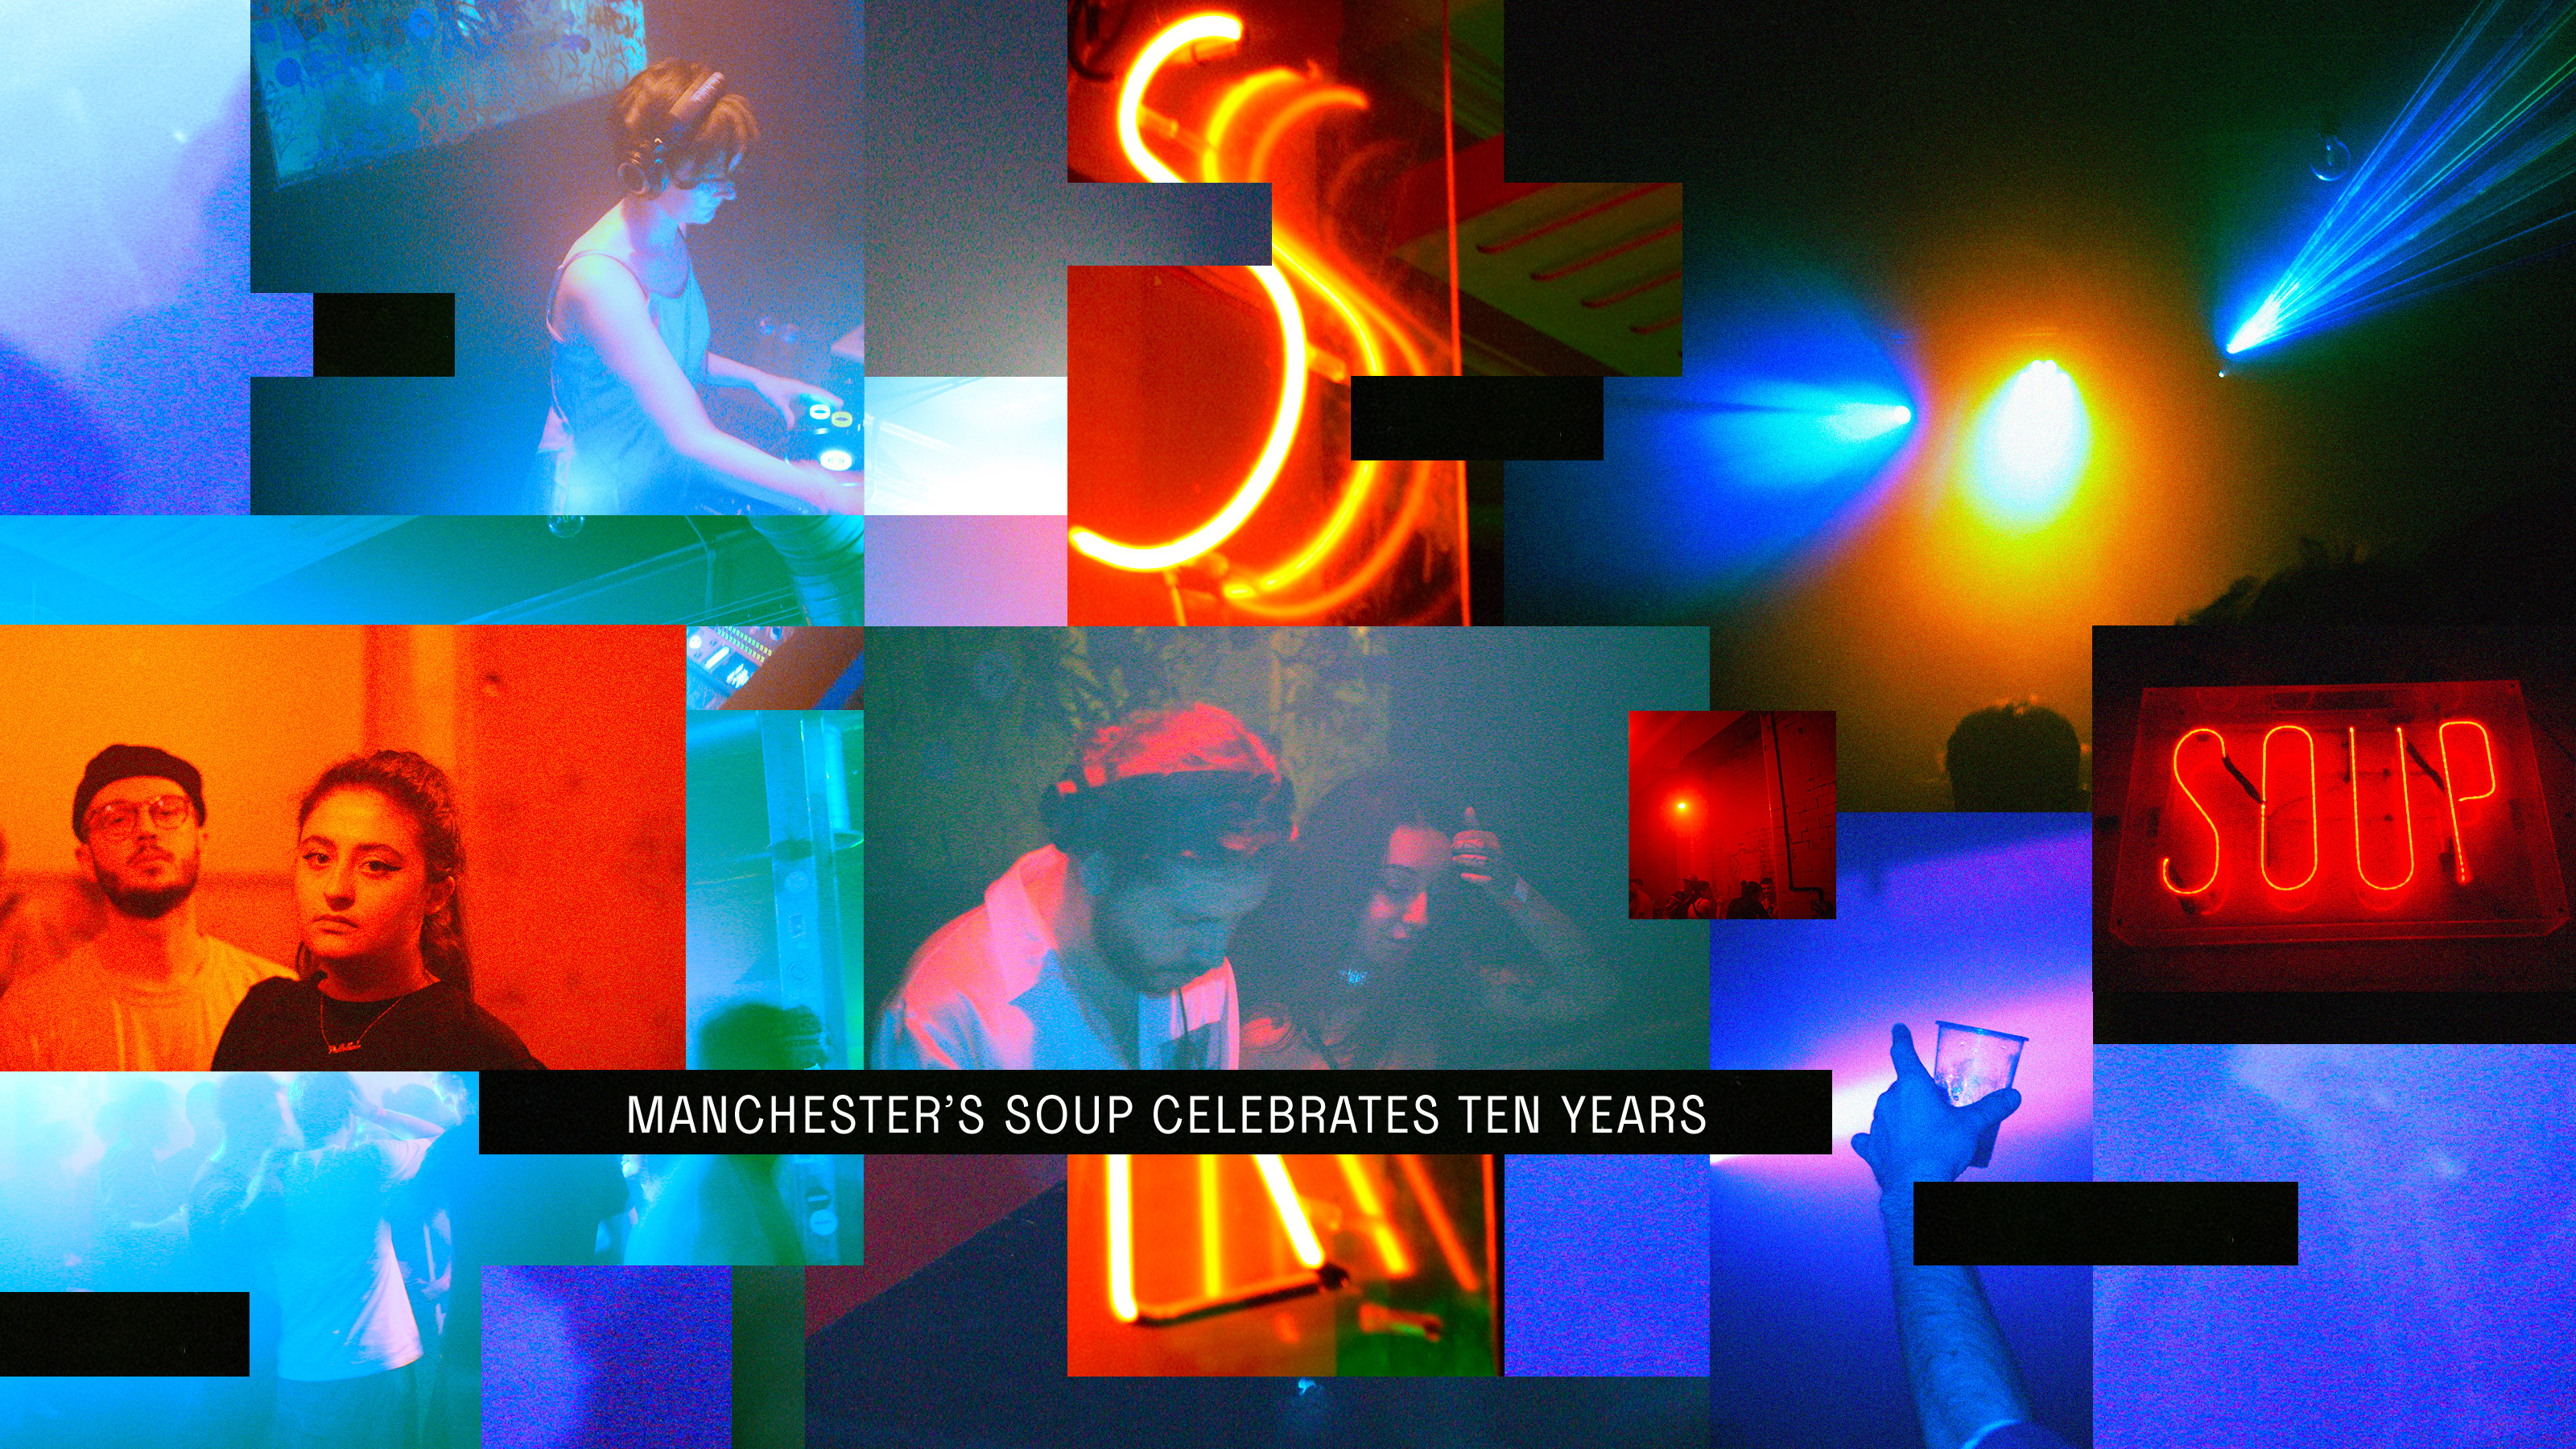 Manchester's SOUP Celebrates Ten Years